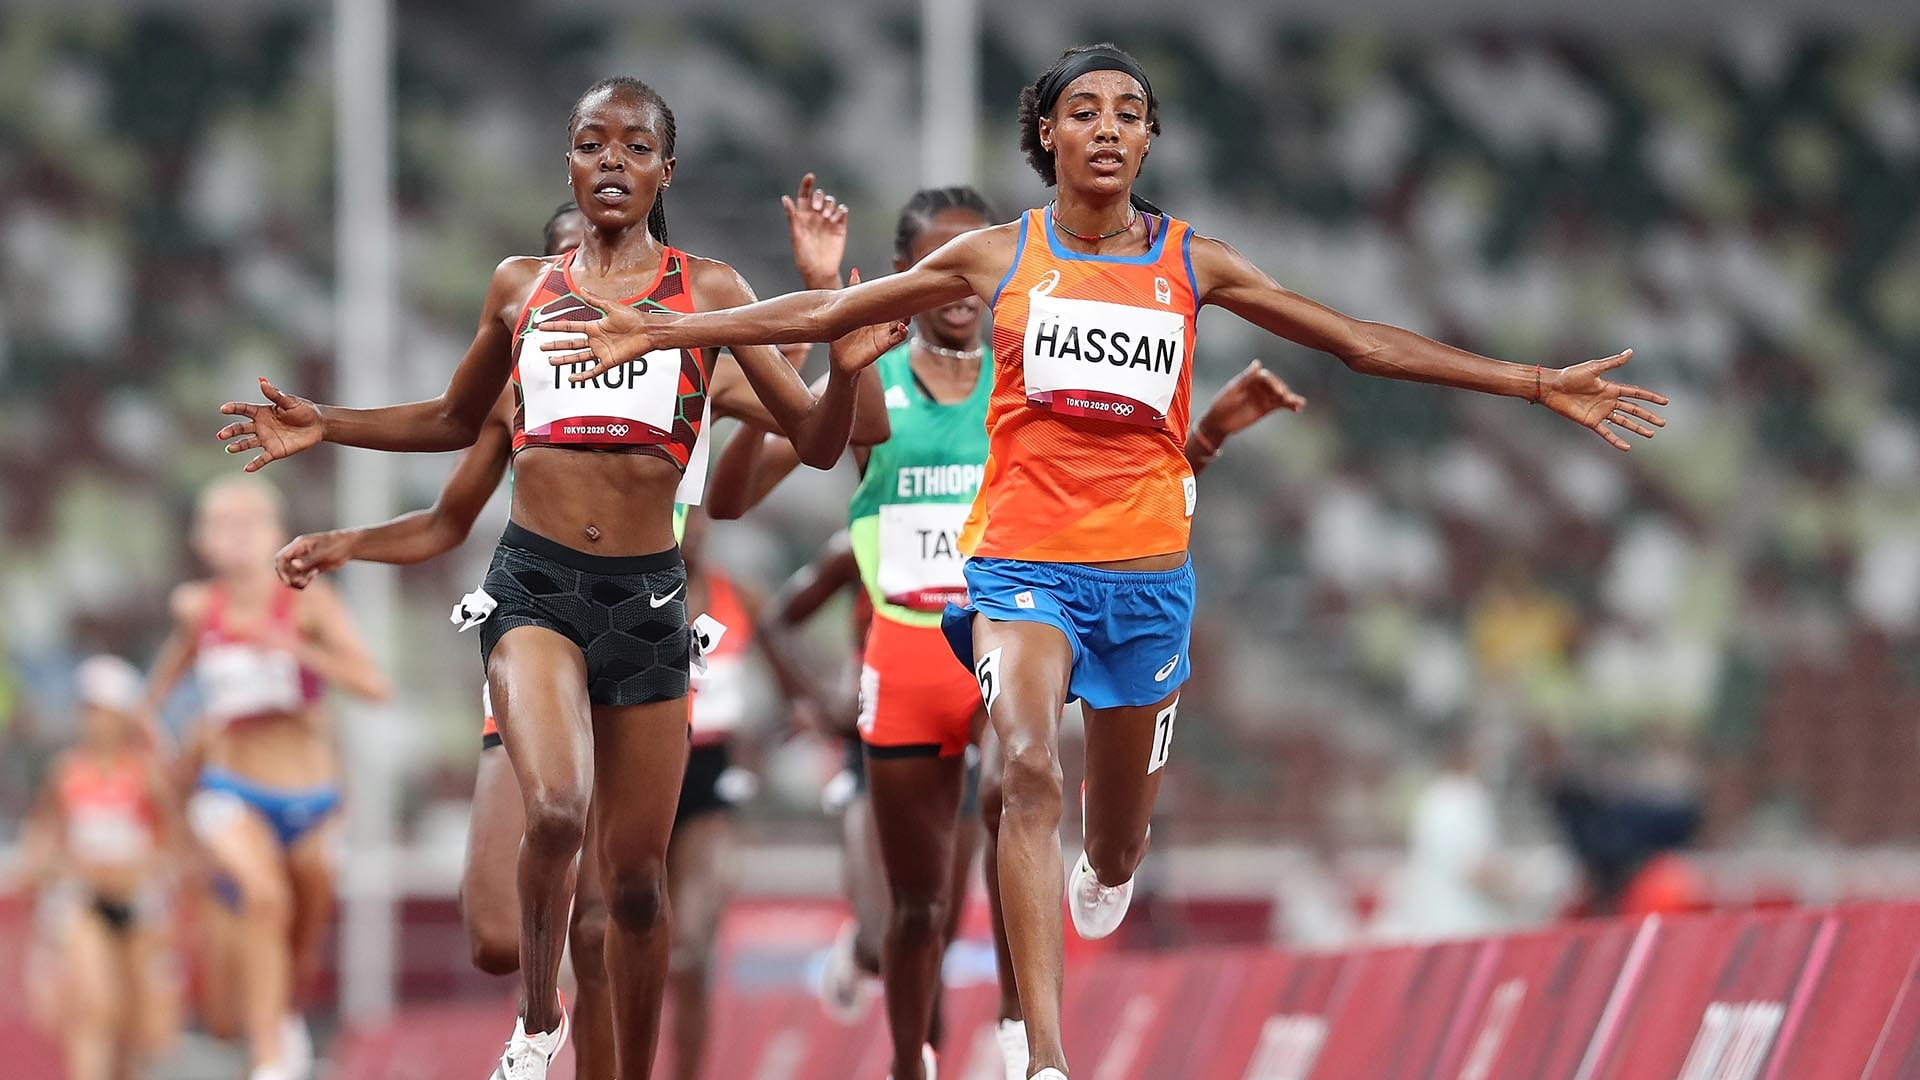 Image for Hassan, Obiri ease into 5,000m final